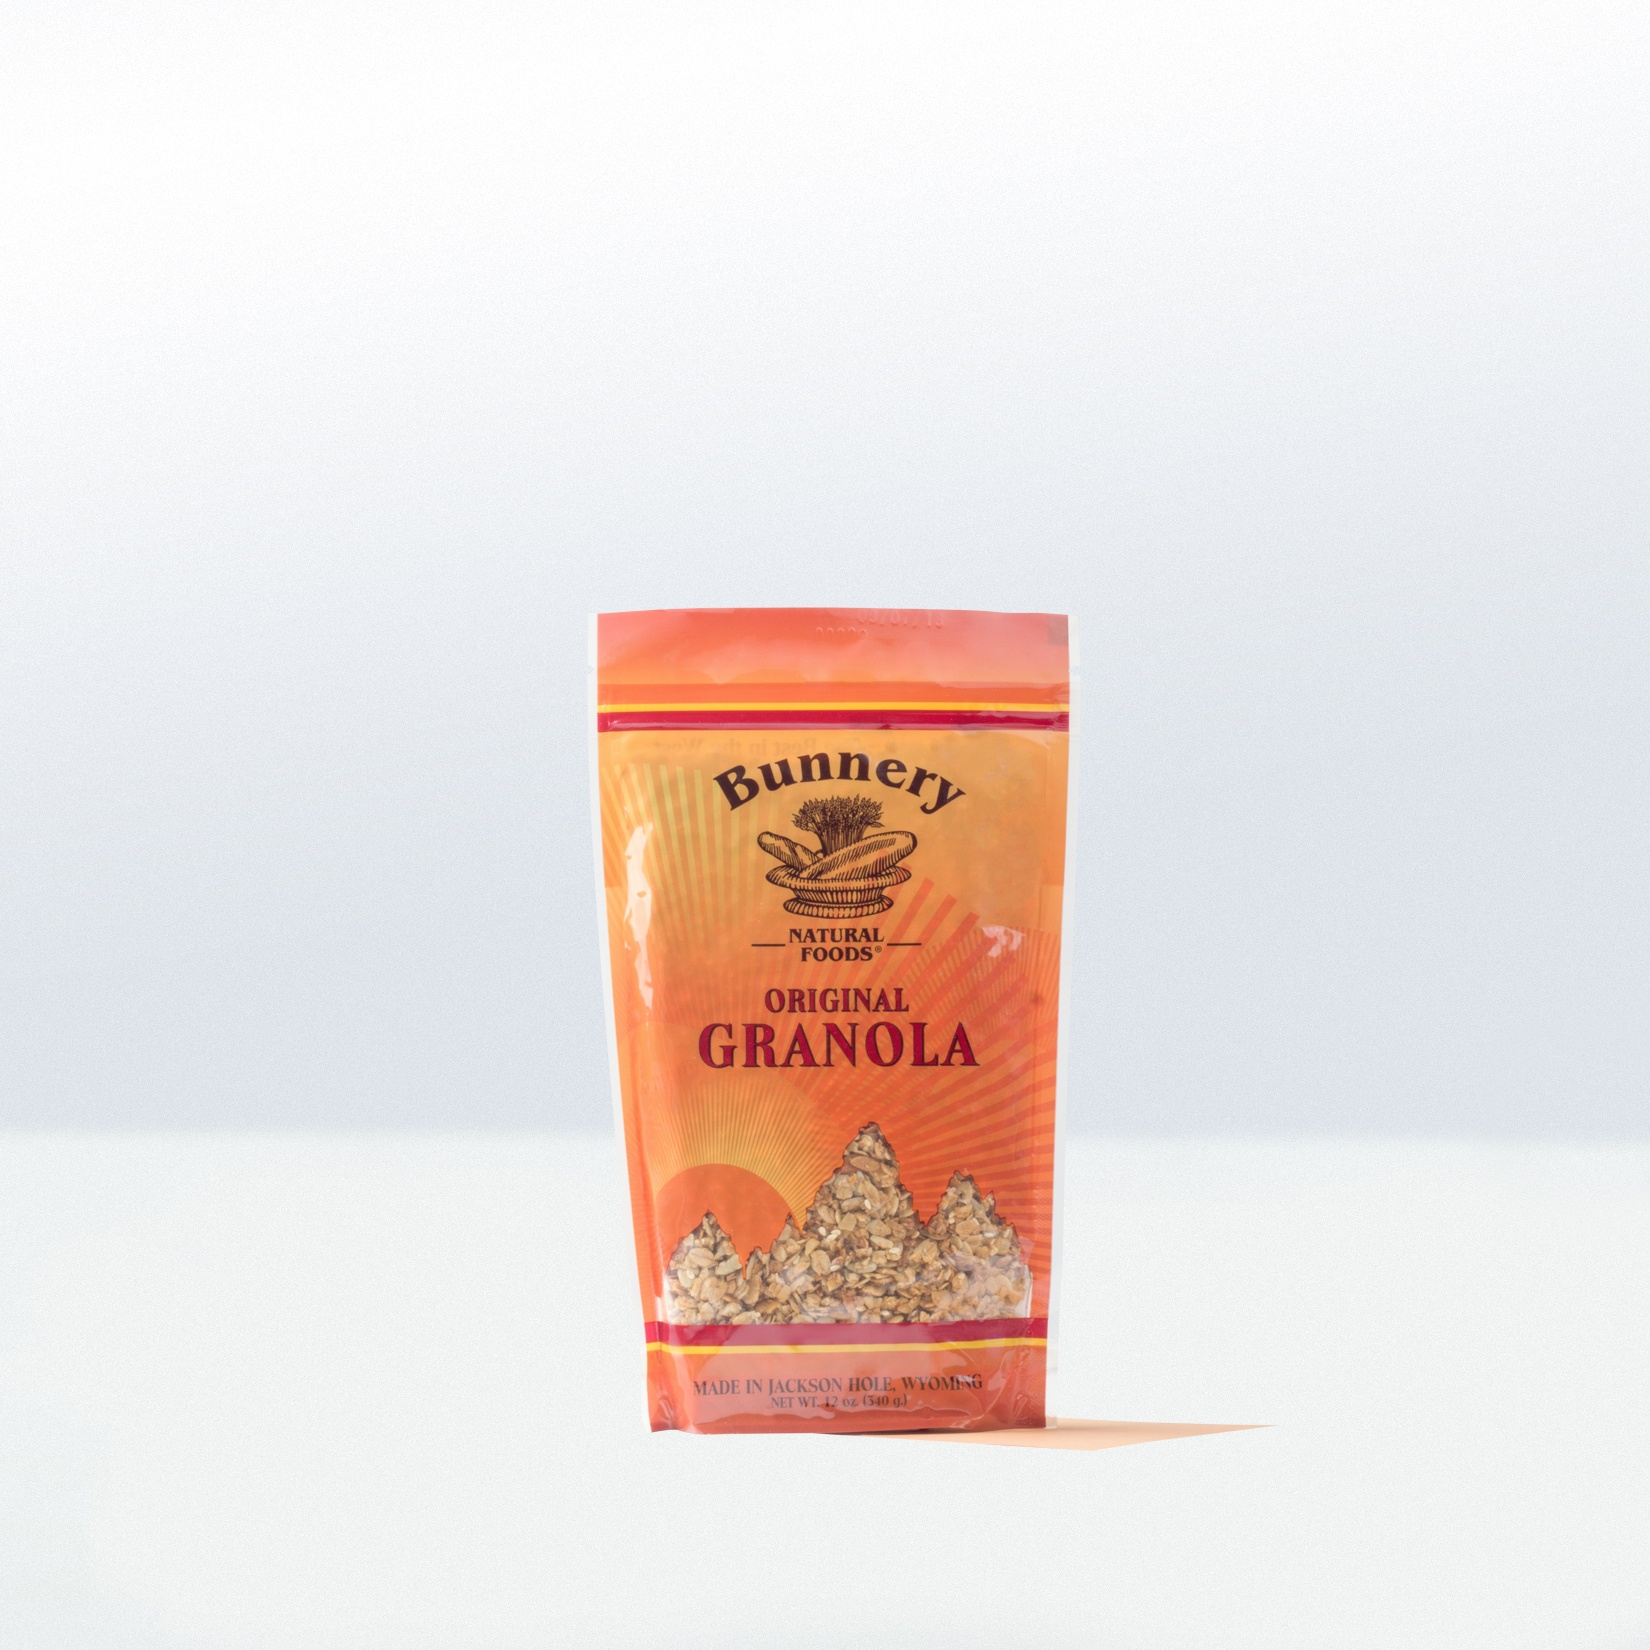 Bunnery Natural Foods-Original Granola